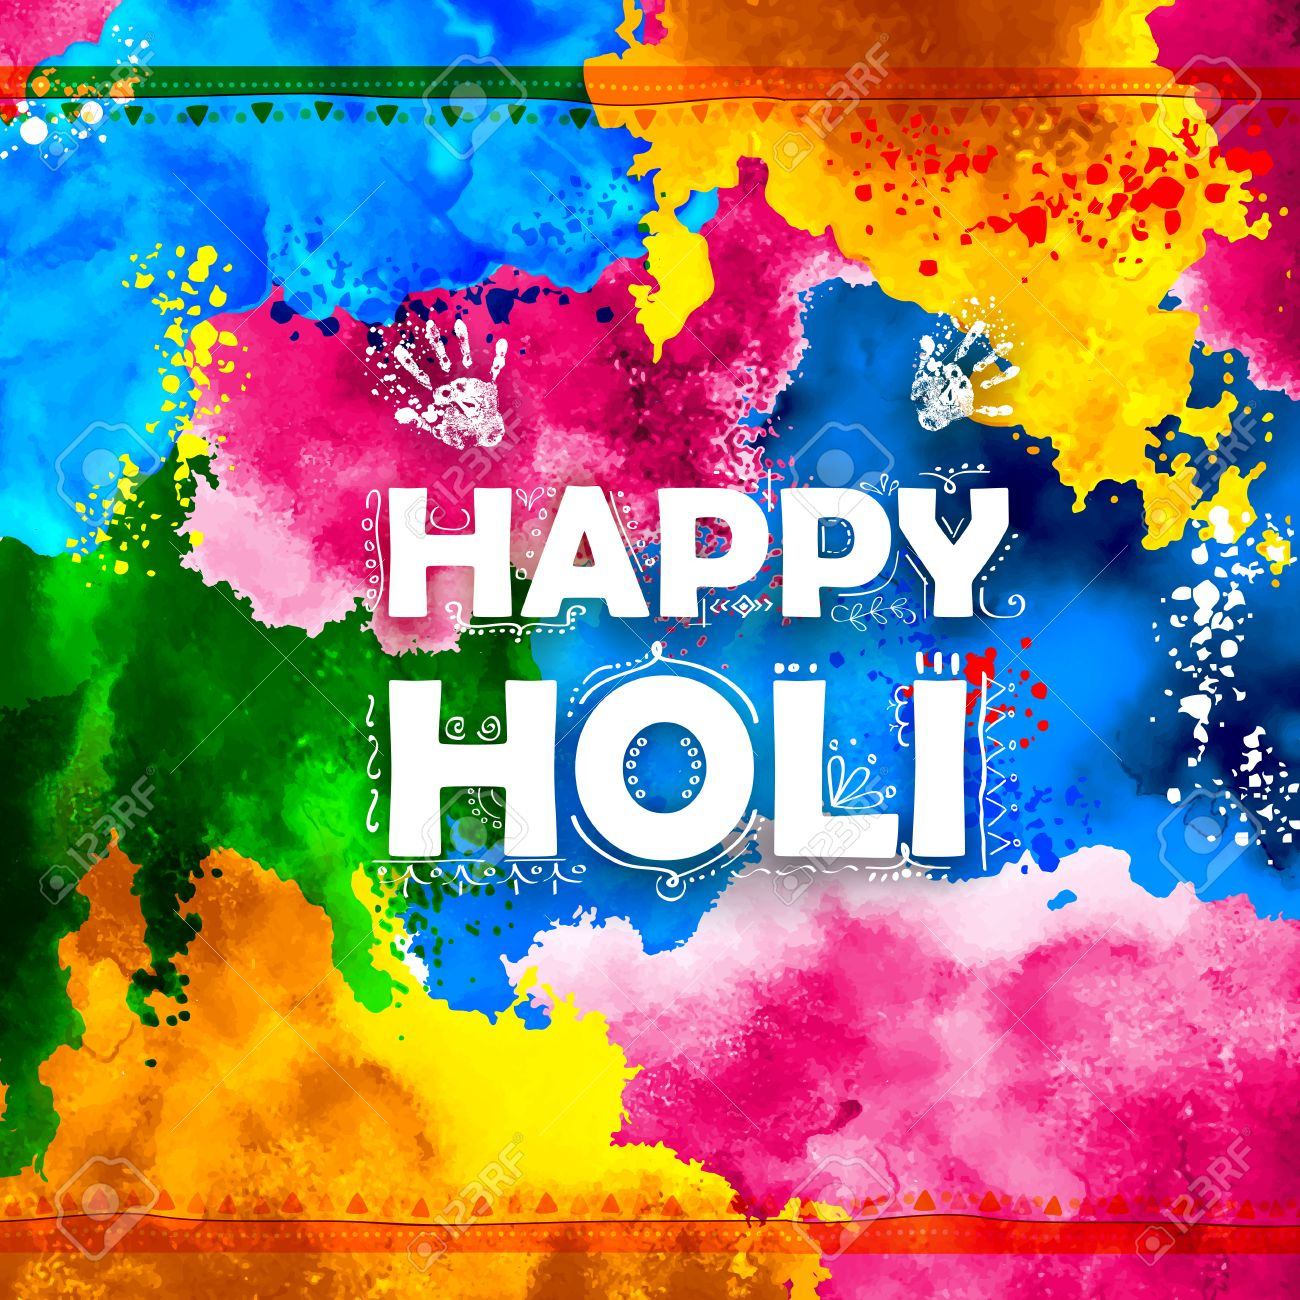 Happy Holi wishes 2020